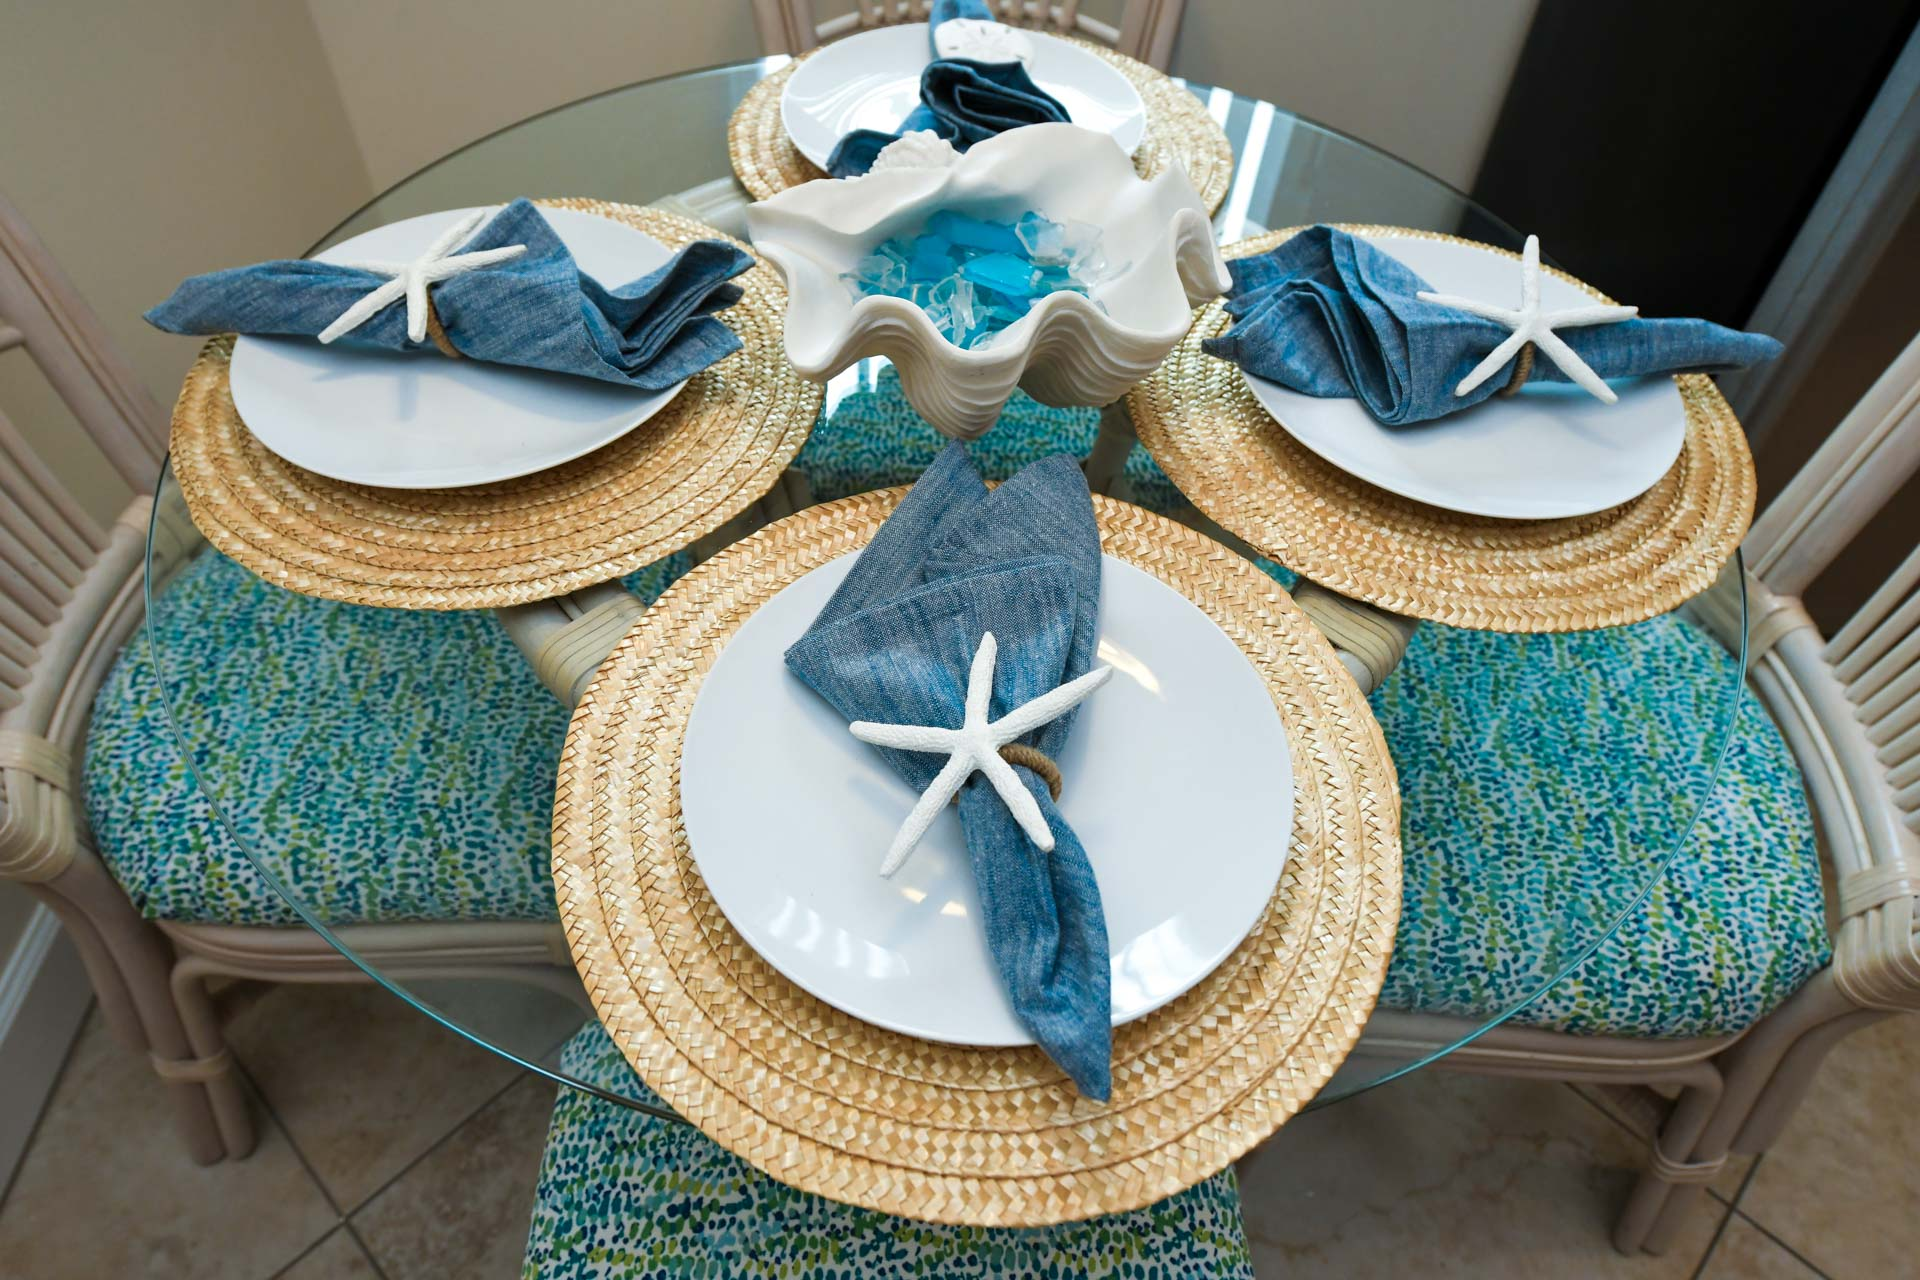 Ocean themed table decorations